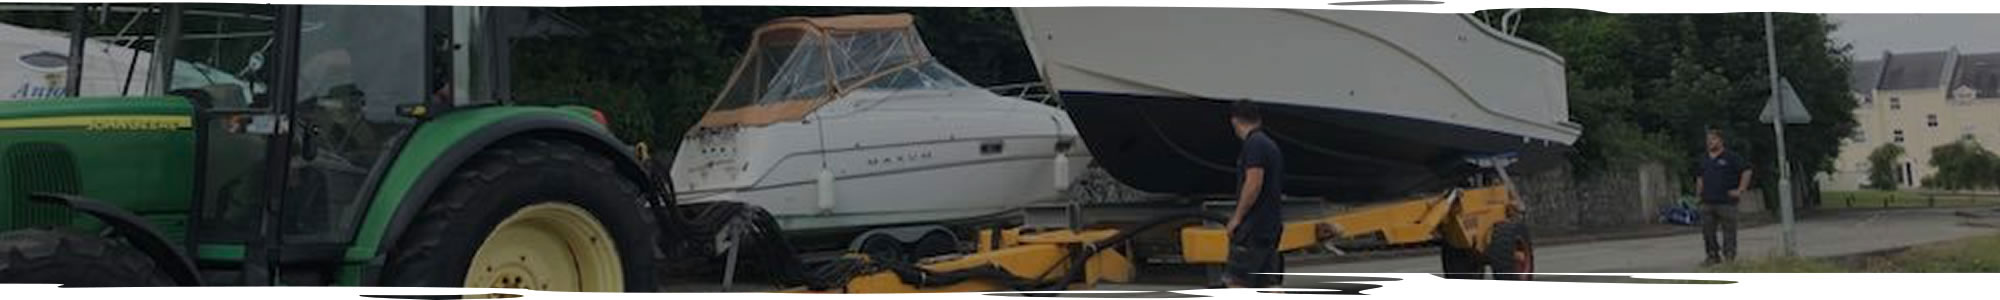 Boating equipment for sale